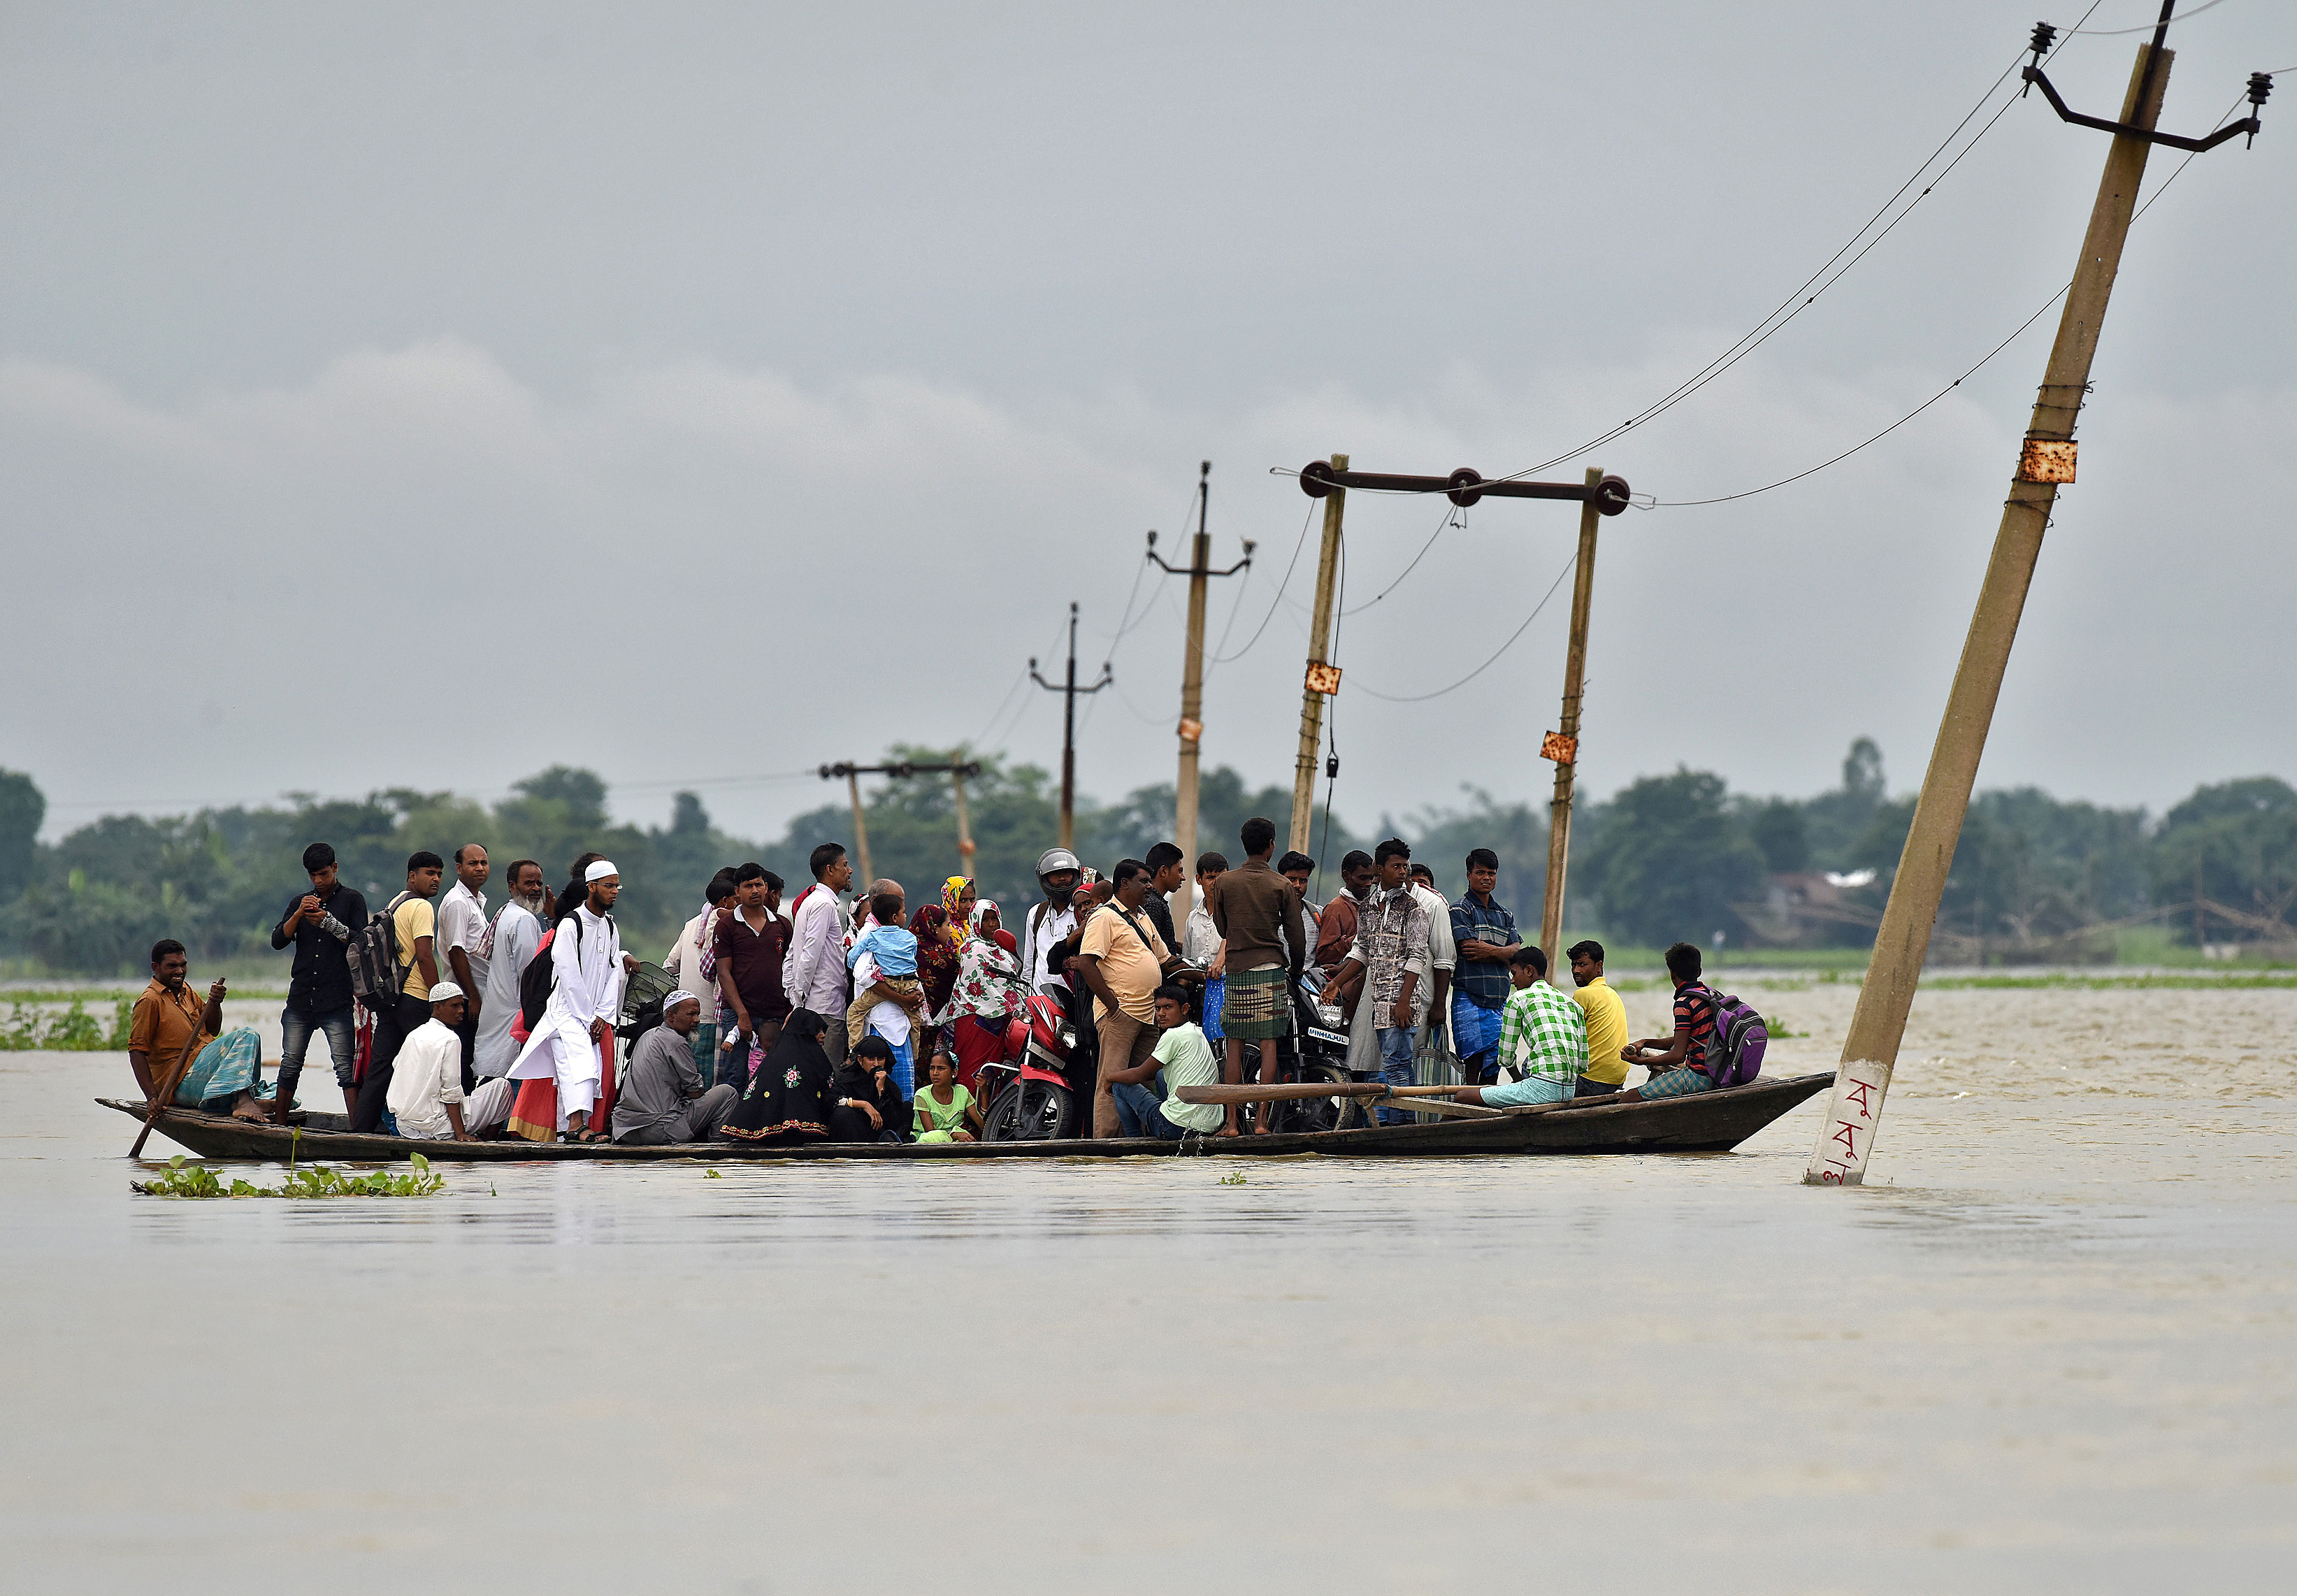 Villagers use a boat to cross a flooded road at Asigarh village in Morigaon district in Assam, India, July 4, 2017. REUTERS/Anuwar Hazarika